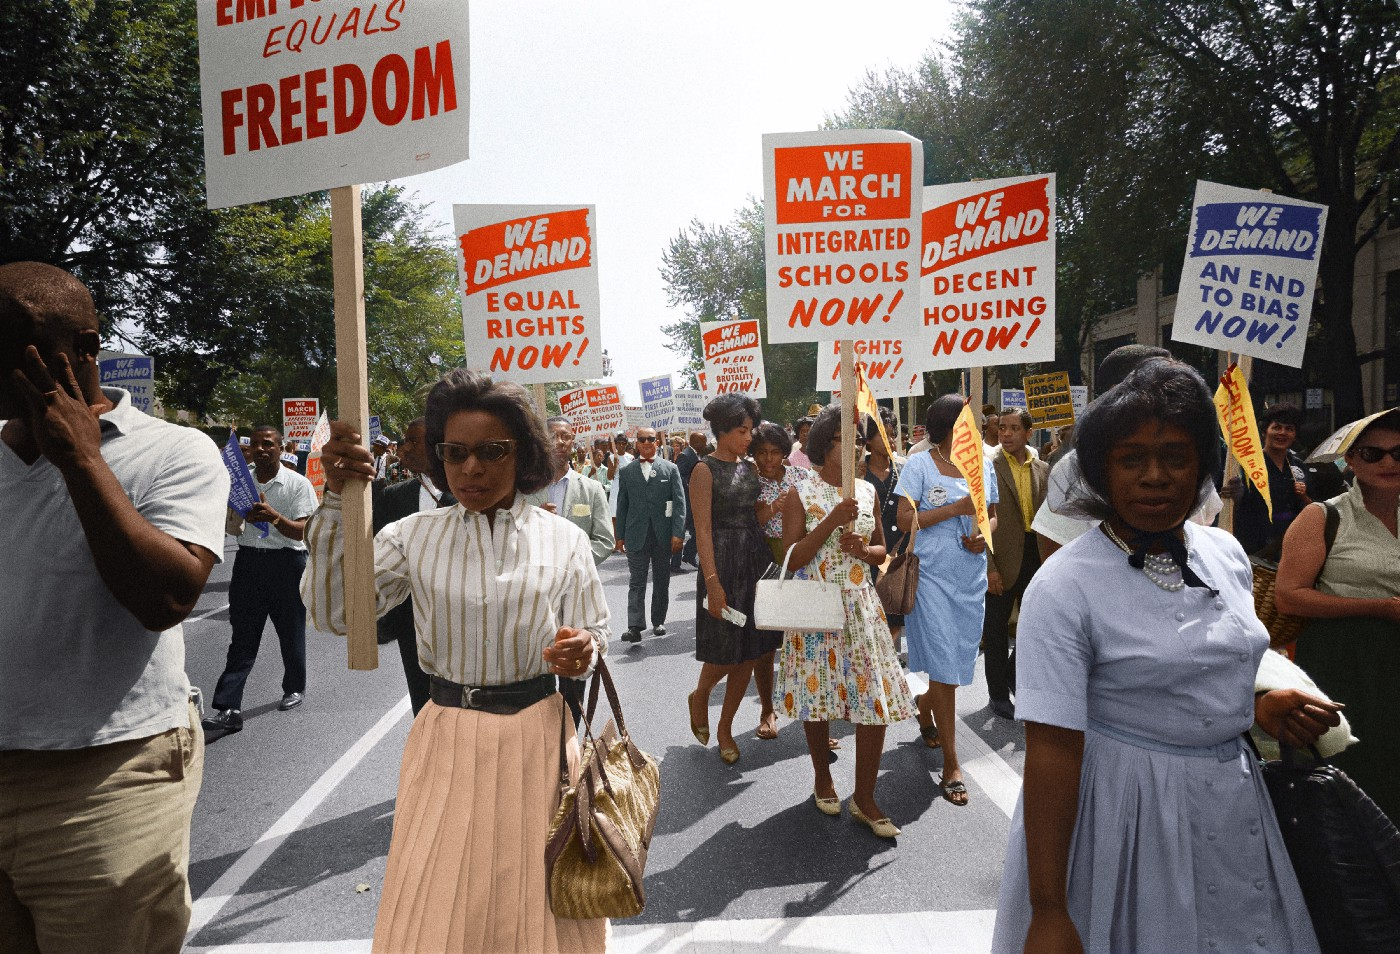 "Civil rights march on Washington, D.C. on August 28th, 1963. Women in foreground hold up signs reading: ""we demand equal rights now, we march for integrated schools now, we demand an end to bias now, and we demand decent housing now."""